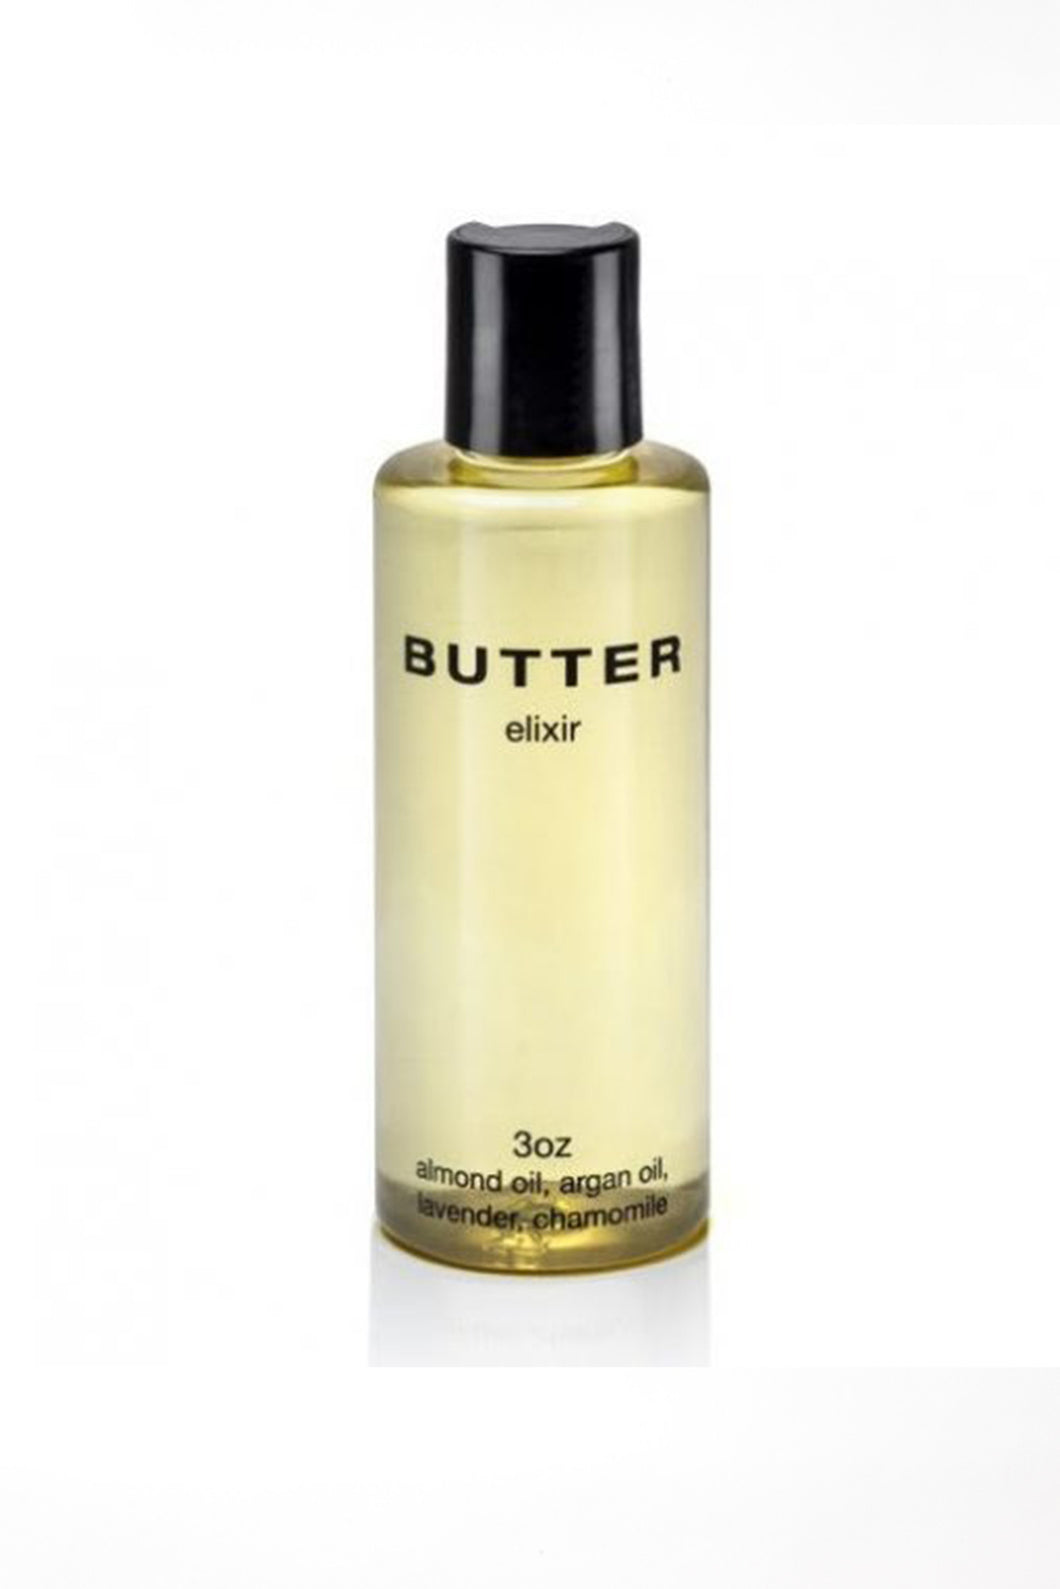 BUTTERelixir Body + Hair Oil 3 oz